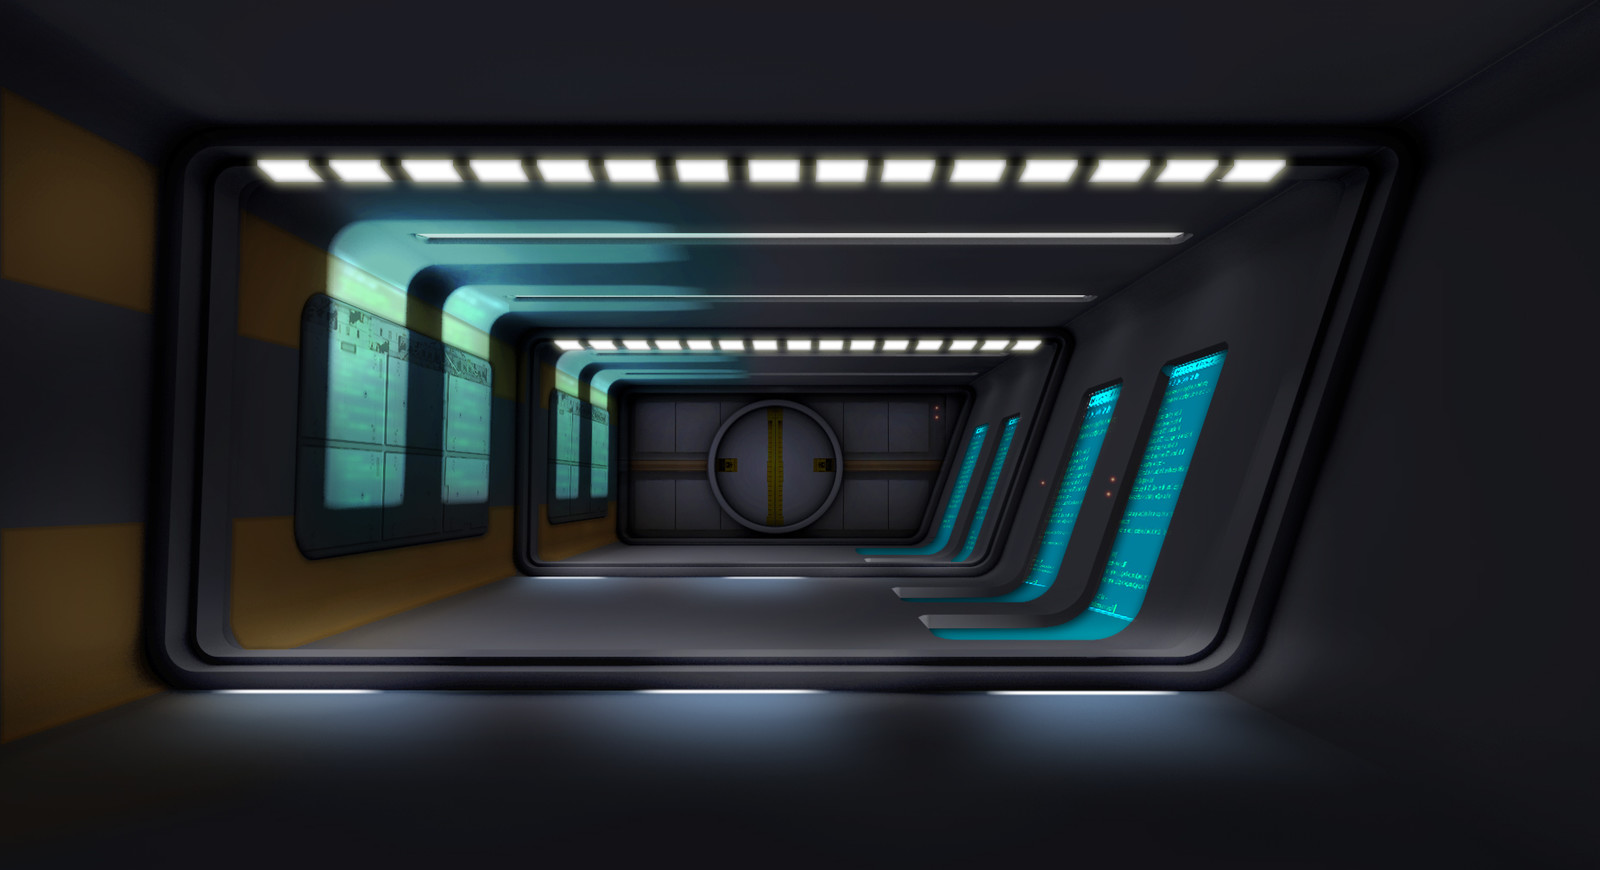 Speed painting for an abandoned abstract space game idea.